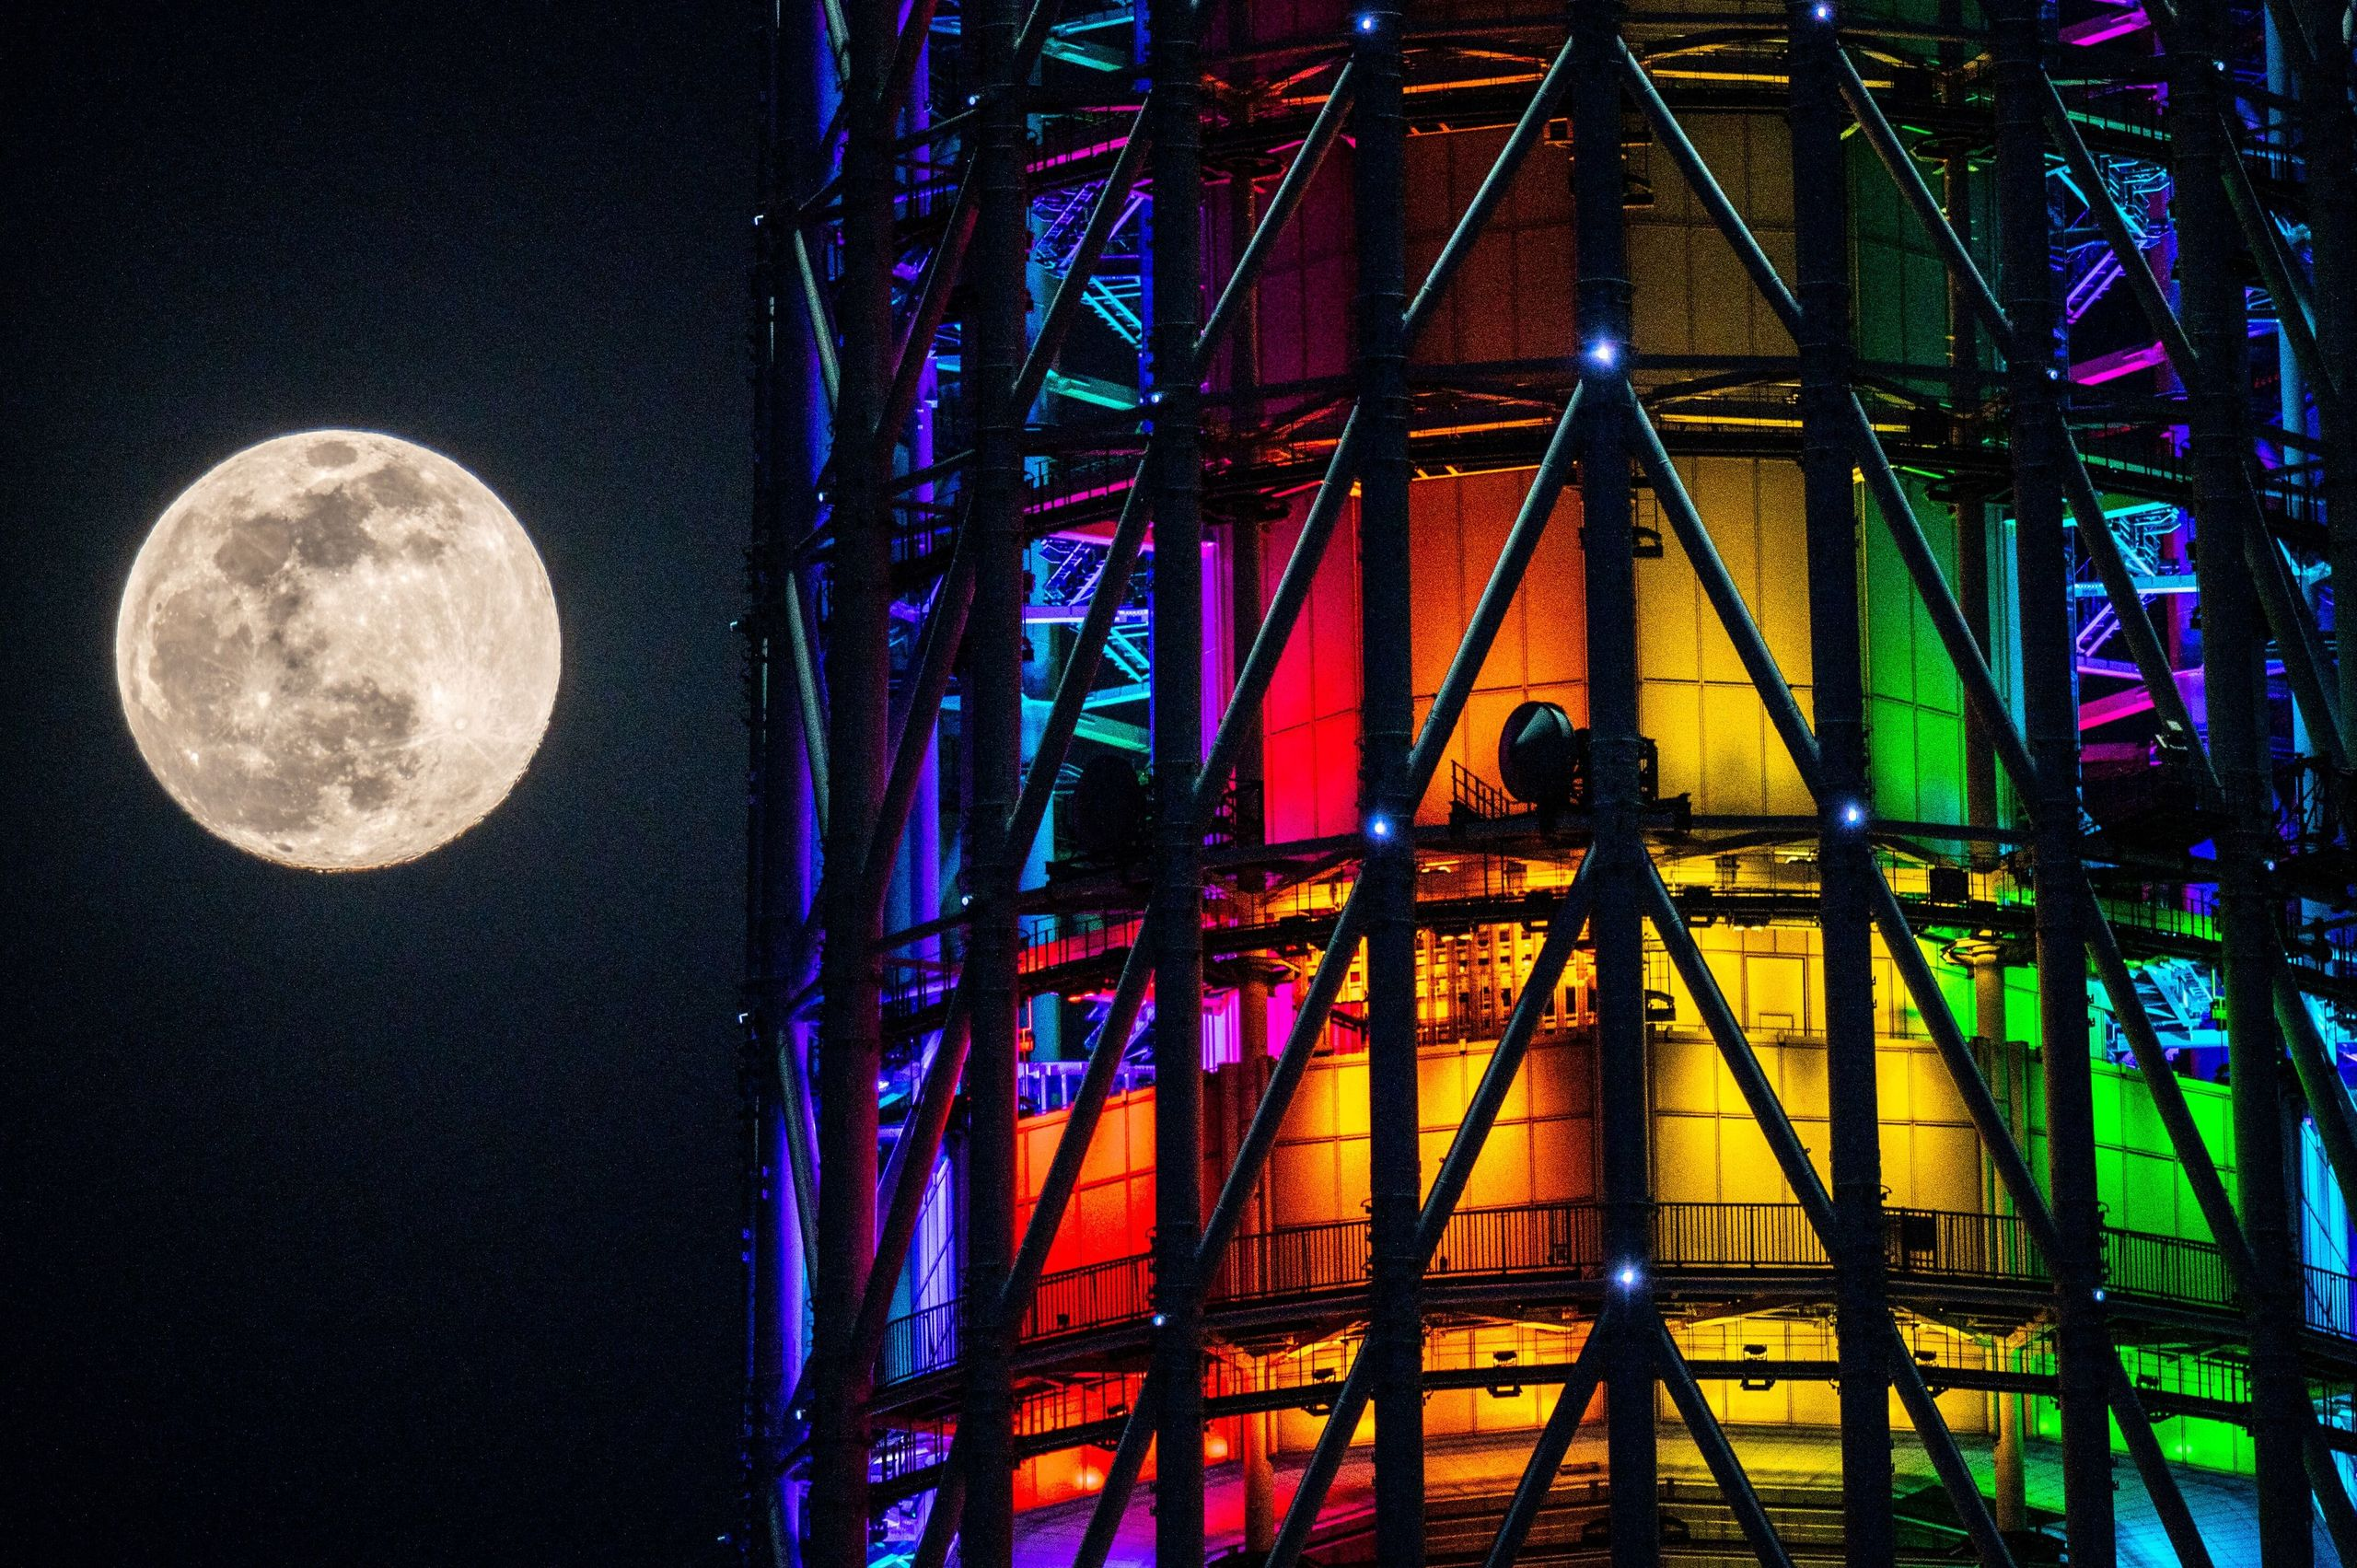 17 amazing photos you missed this week